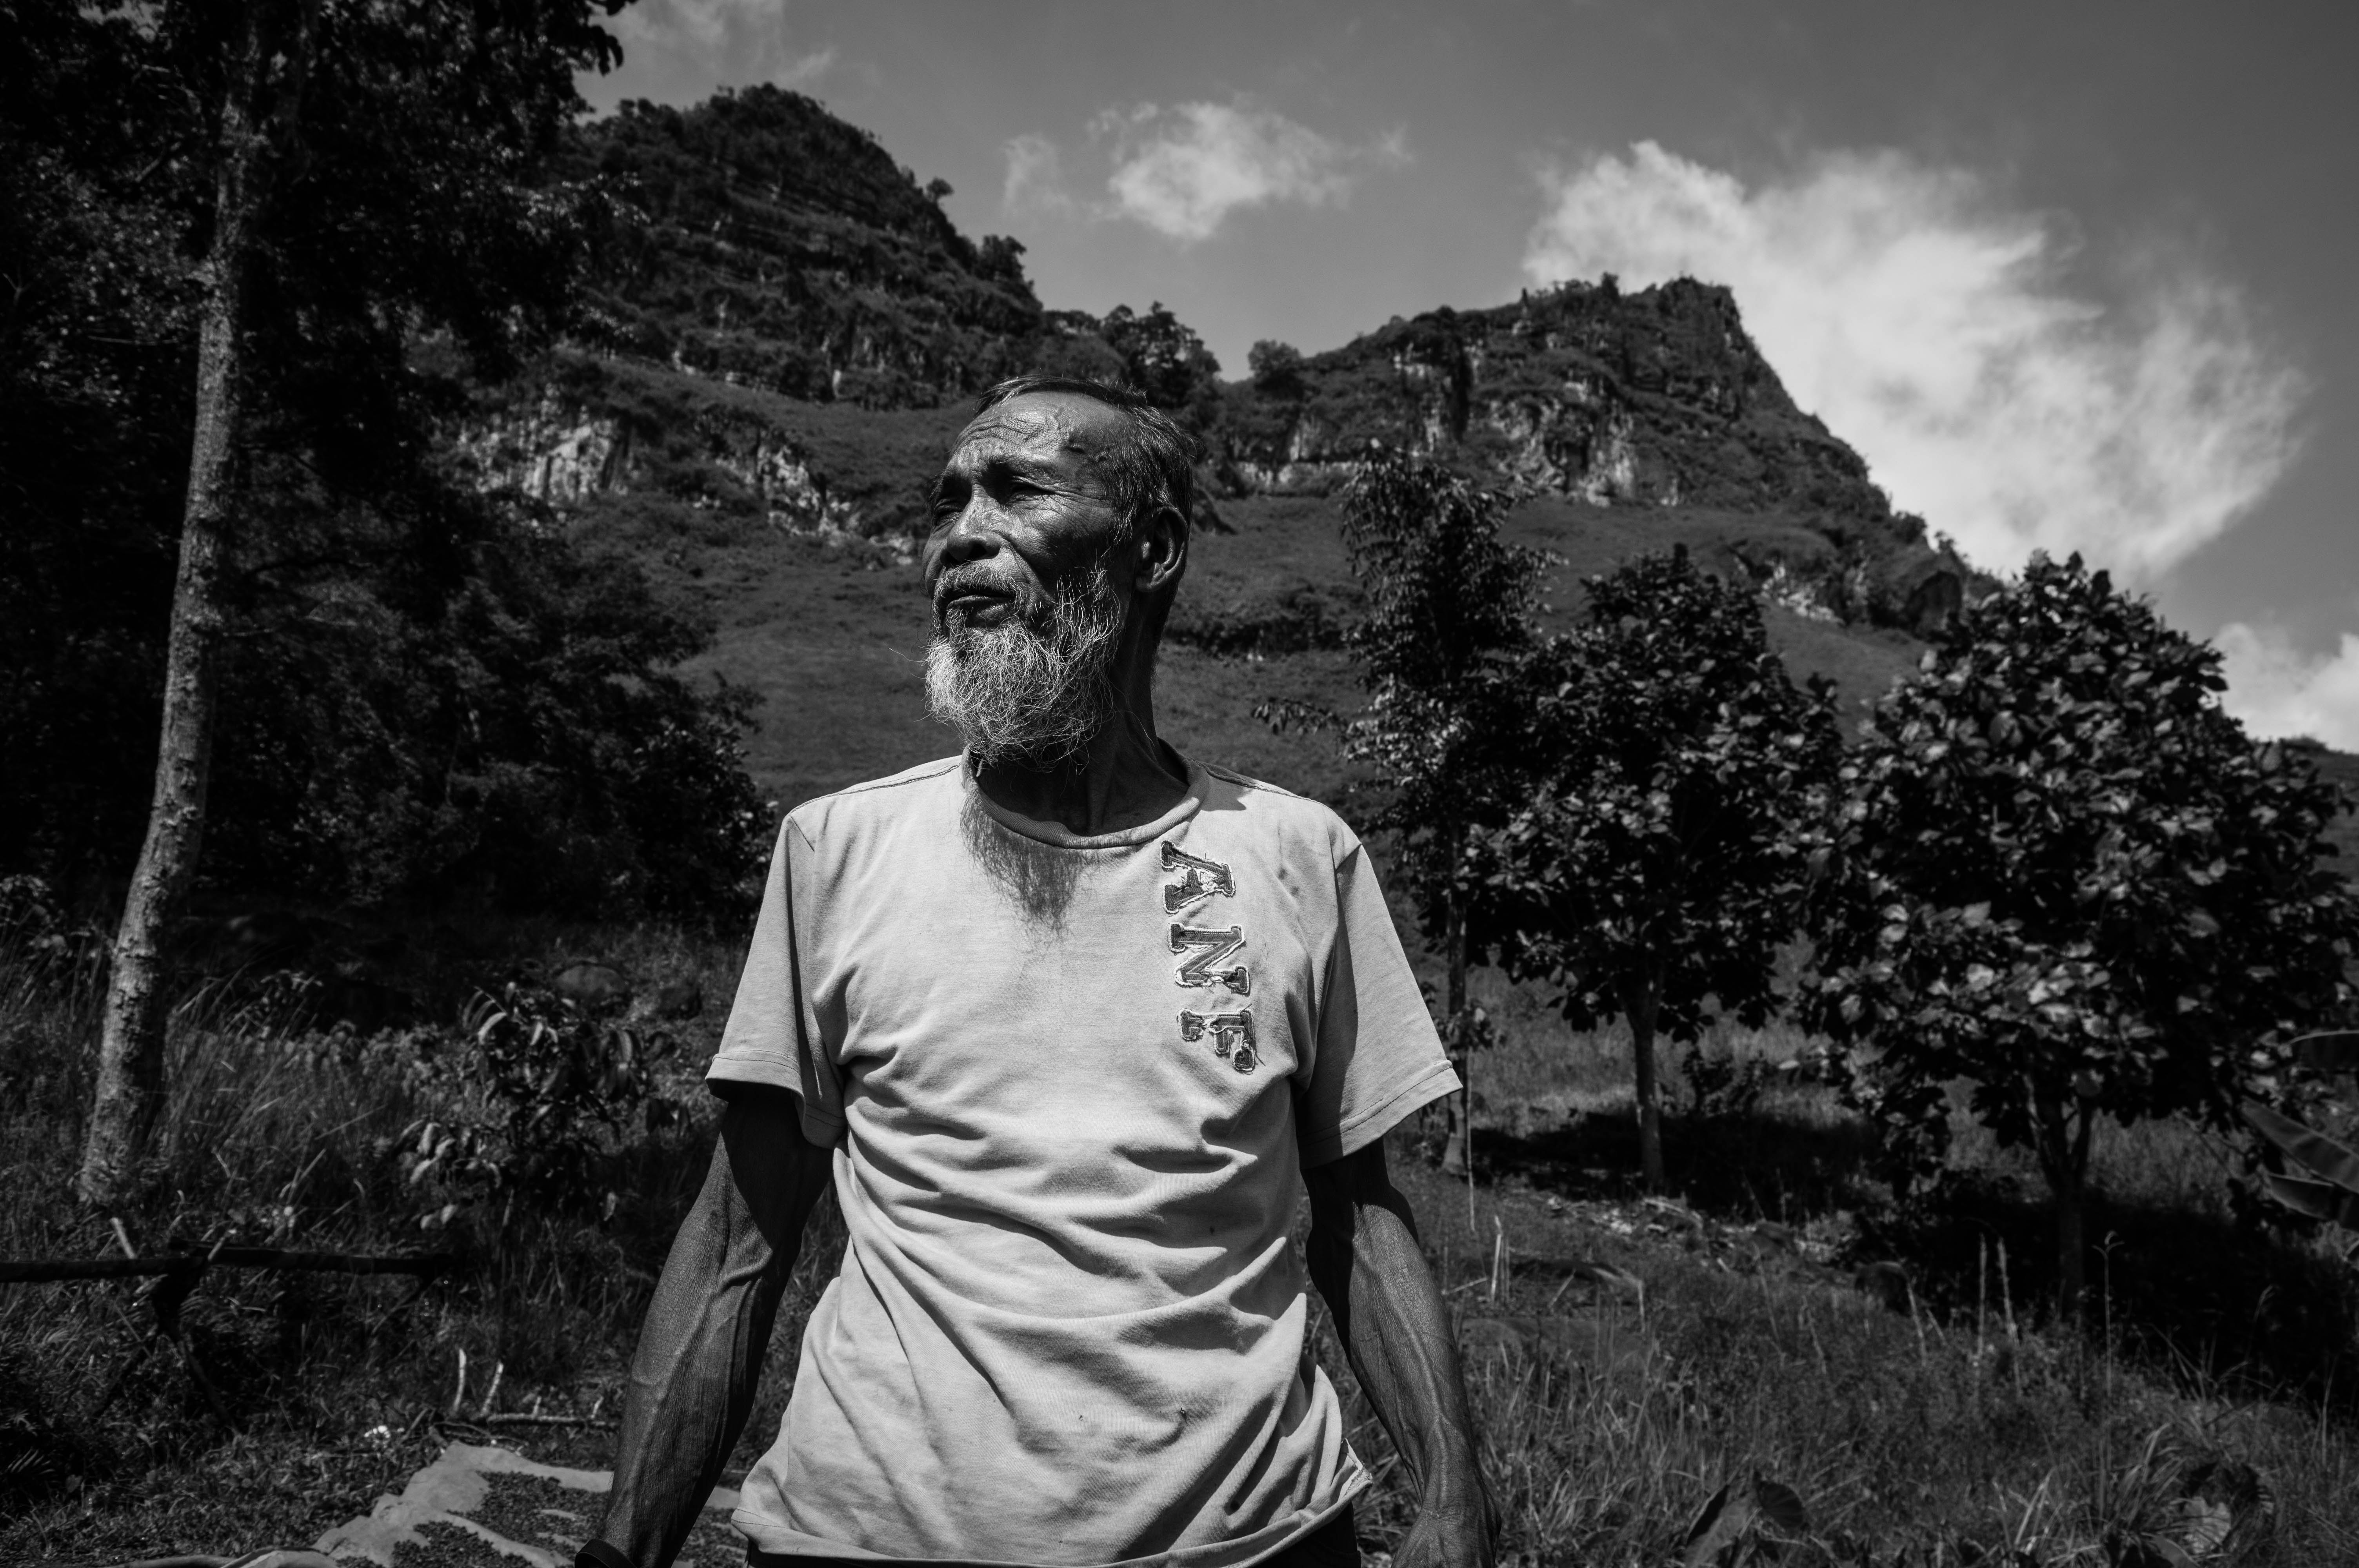 grayscale photography of man standing near trees